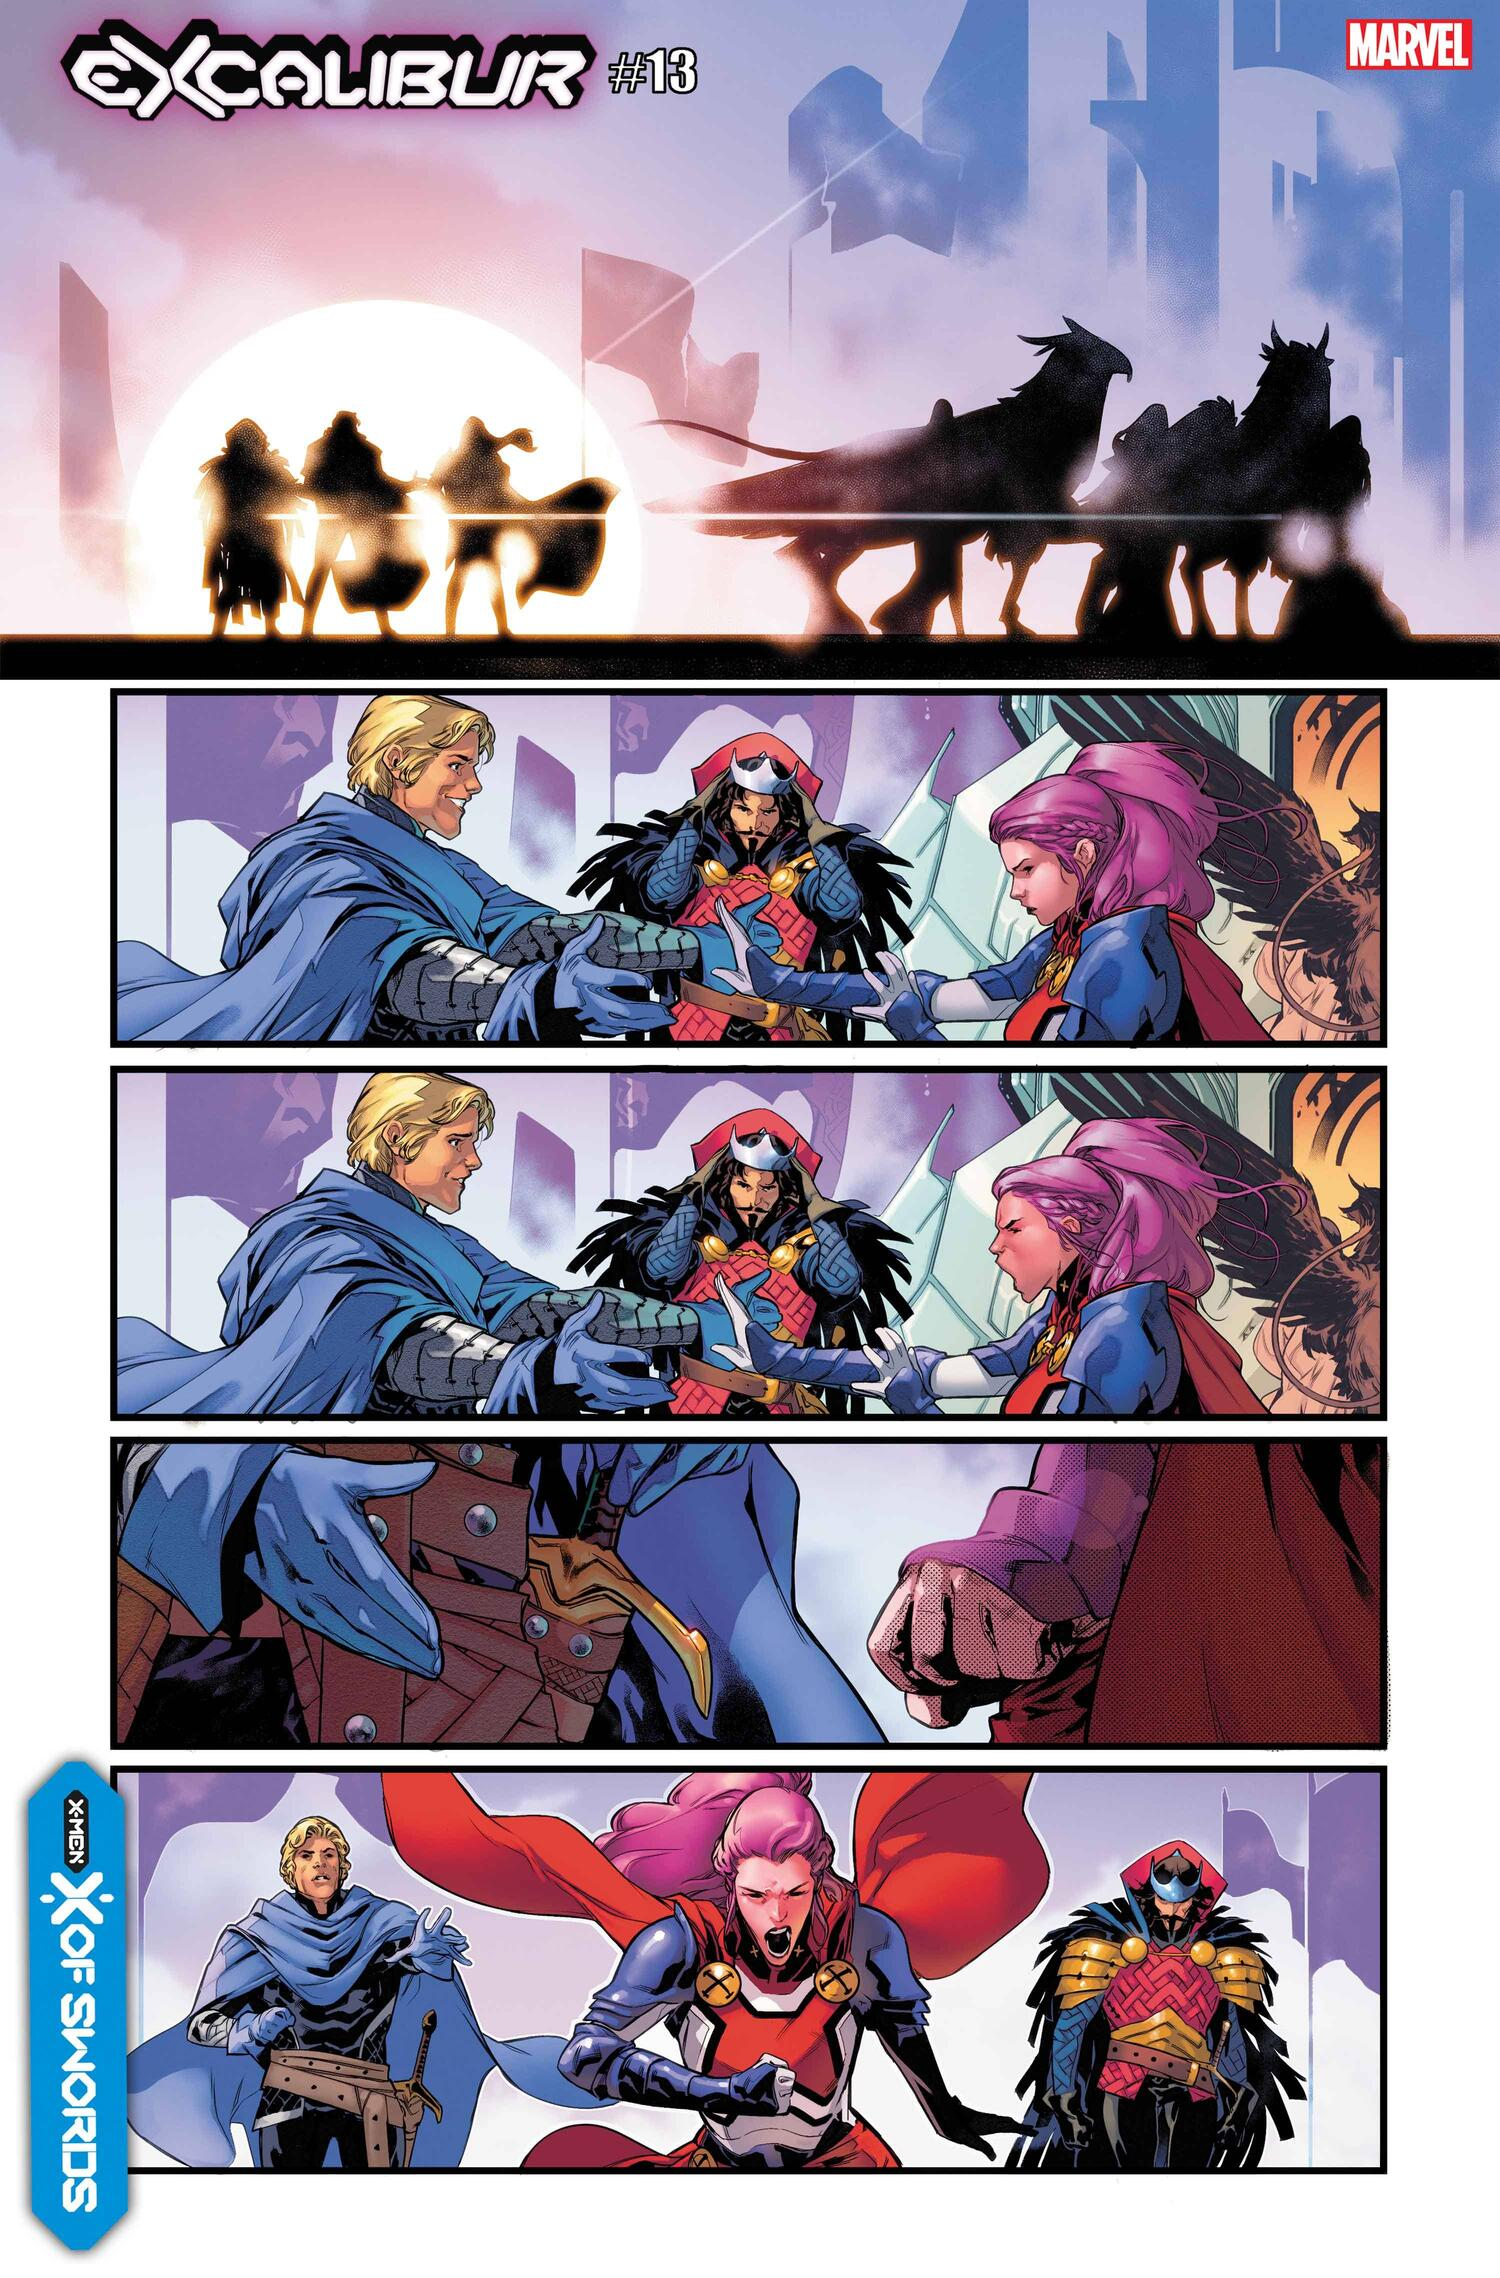 EXCALIBUR #13 preview interiors by R.B. Silva with colors by Nolan Woodard